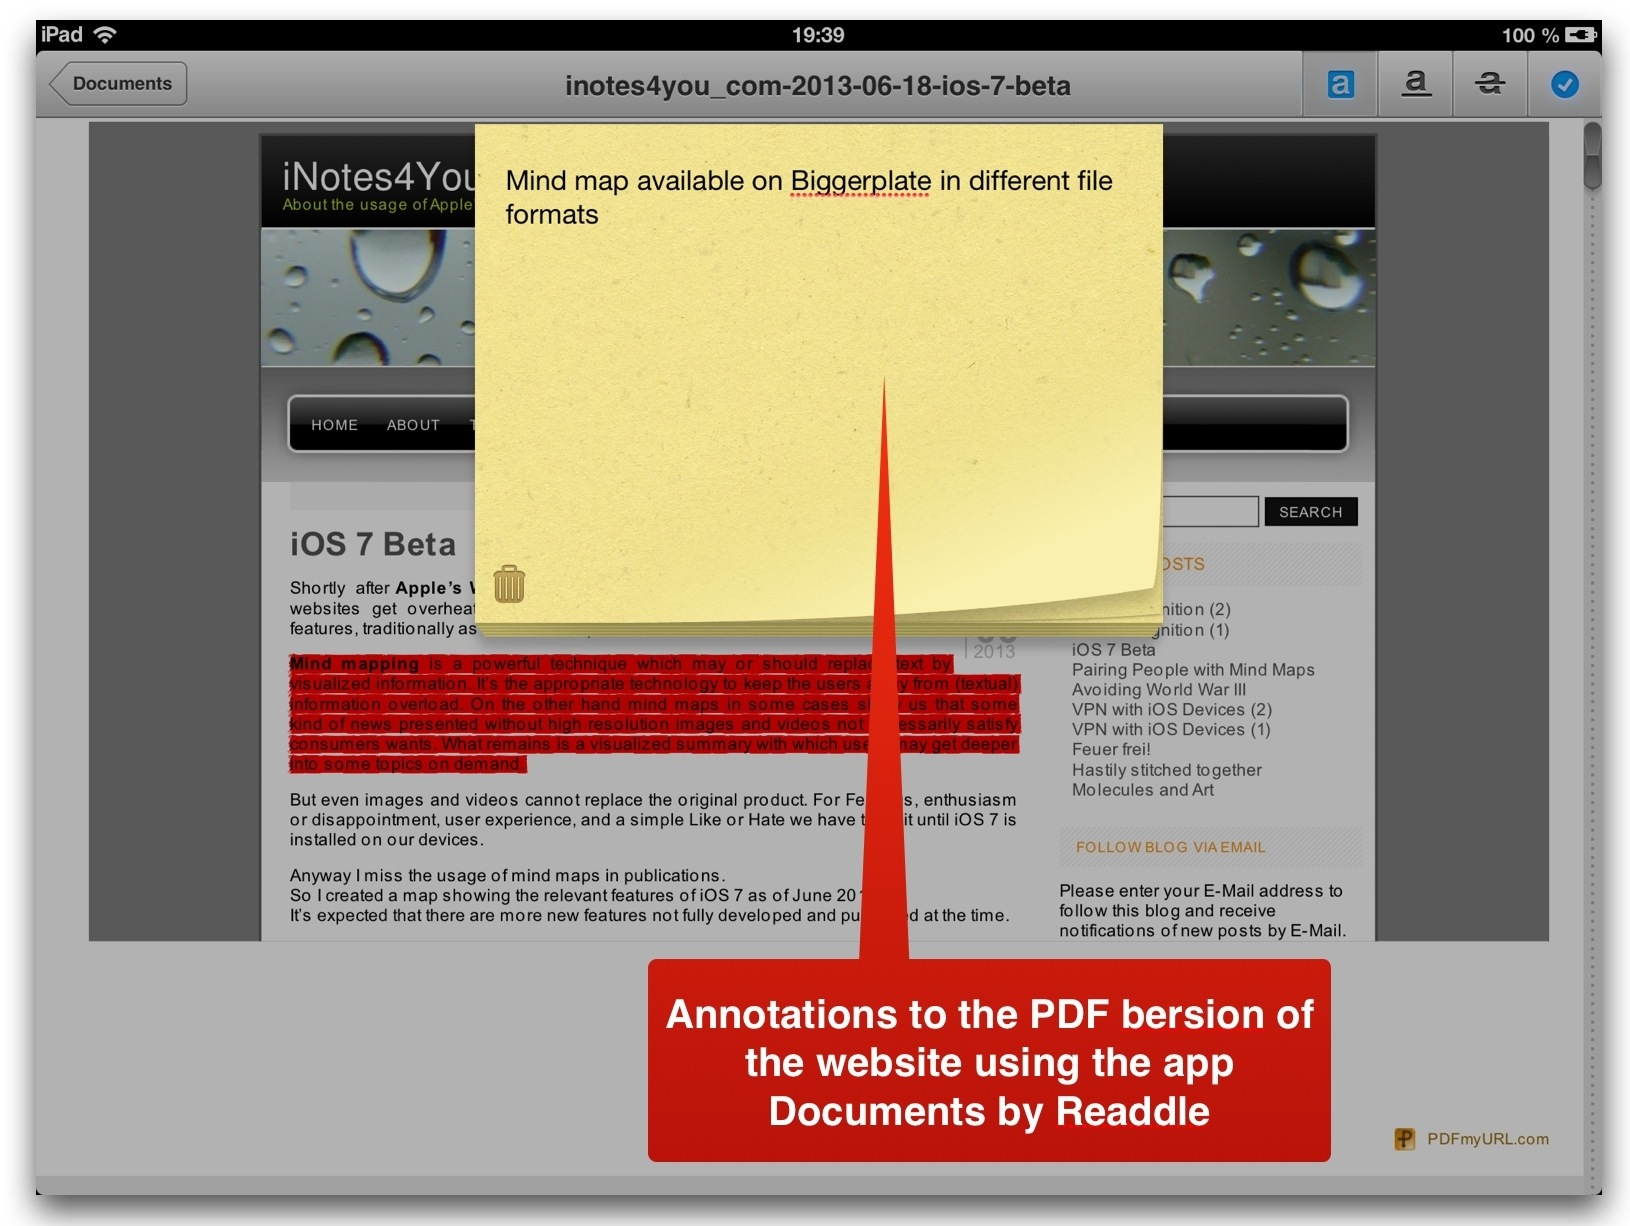 how to copy text from a pdf without losing formatting